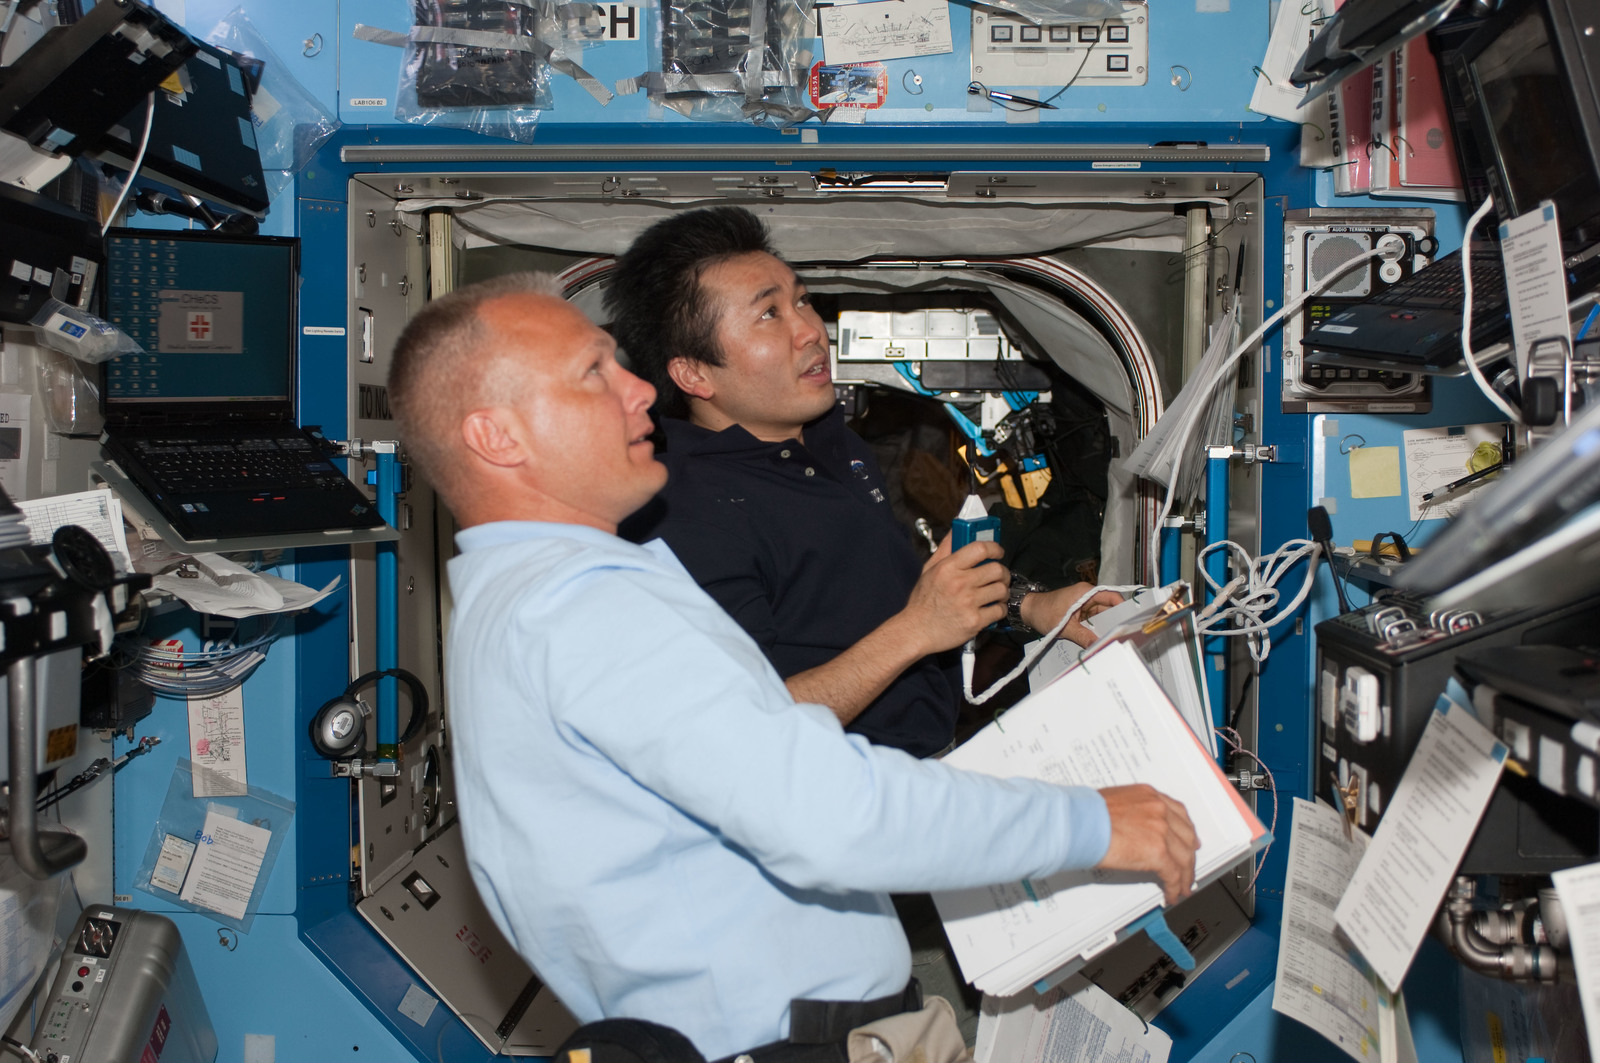 S127E006848 - STS-127 - Wakata and Hurley during EVA-1 of STS-127 / Expedition Joint Operations